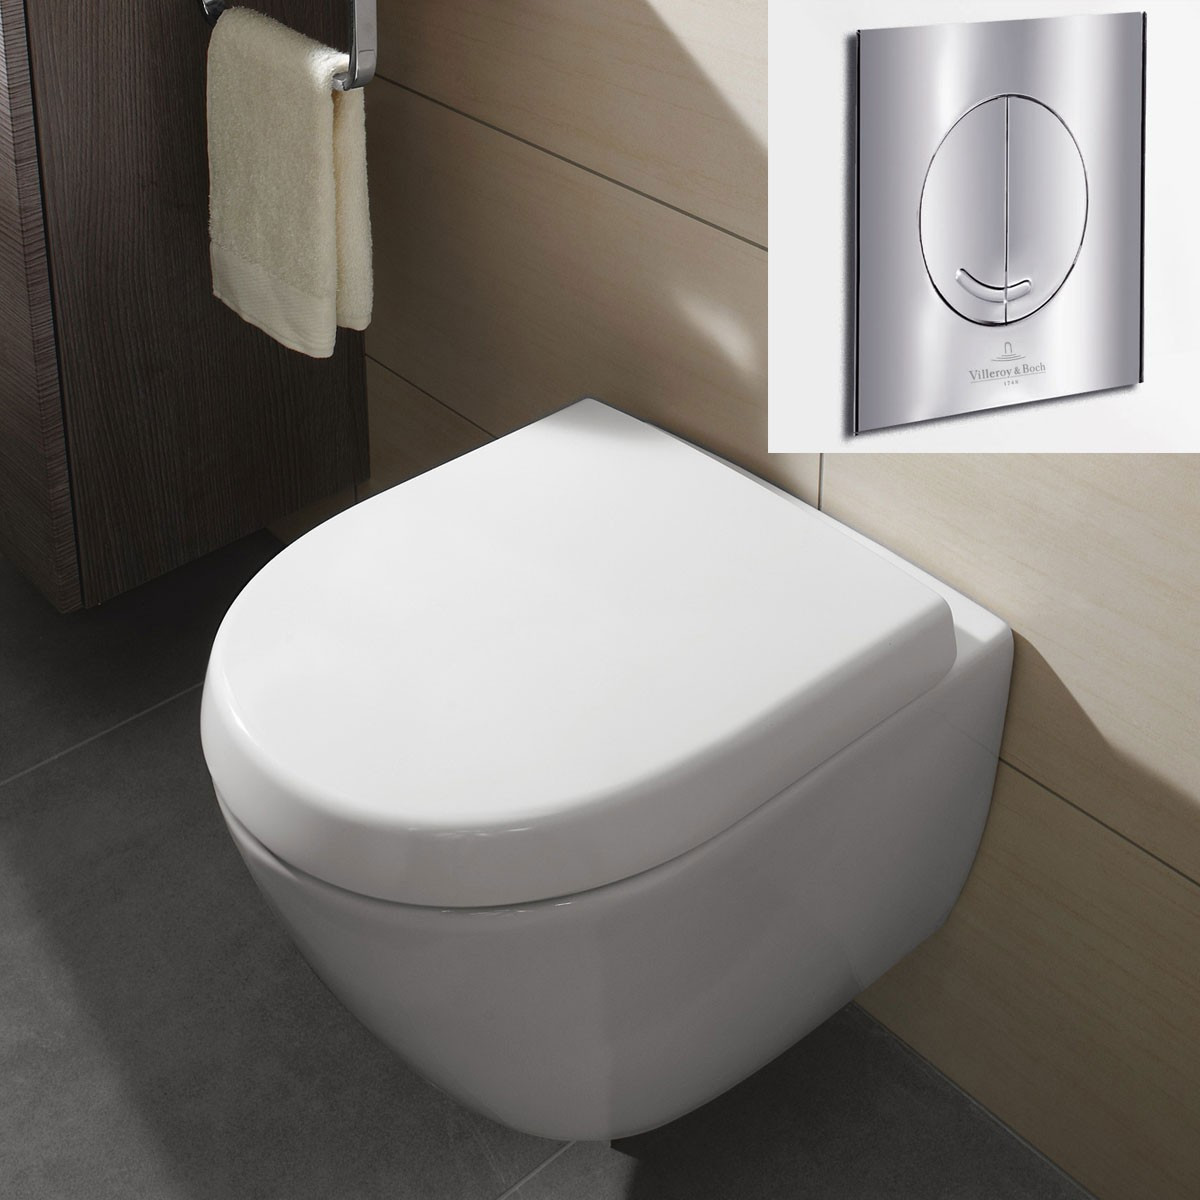 villeroy boch sein wc paketti subway 2 0 compact ceramicplus t ydellinen v b kromipainike. Black Bedroom Furniture Sets. Home Design Ideas